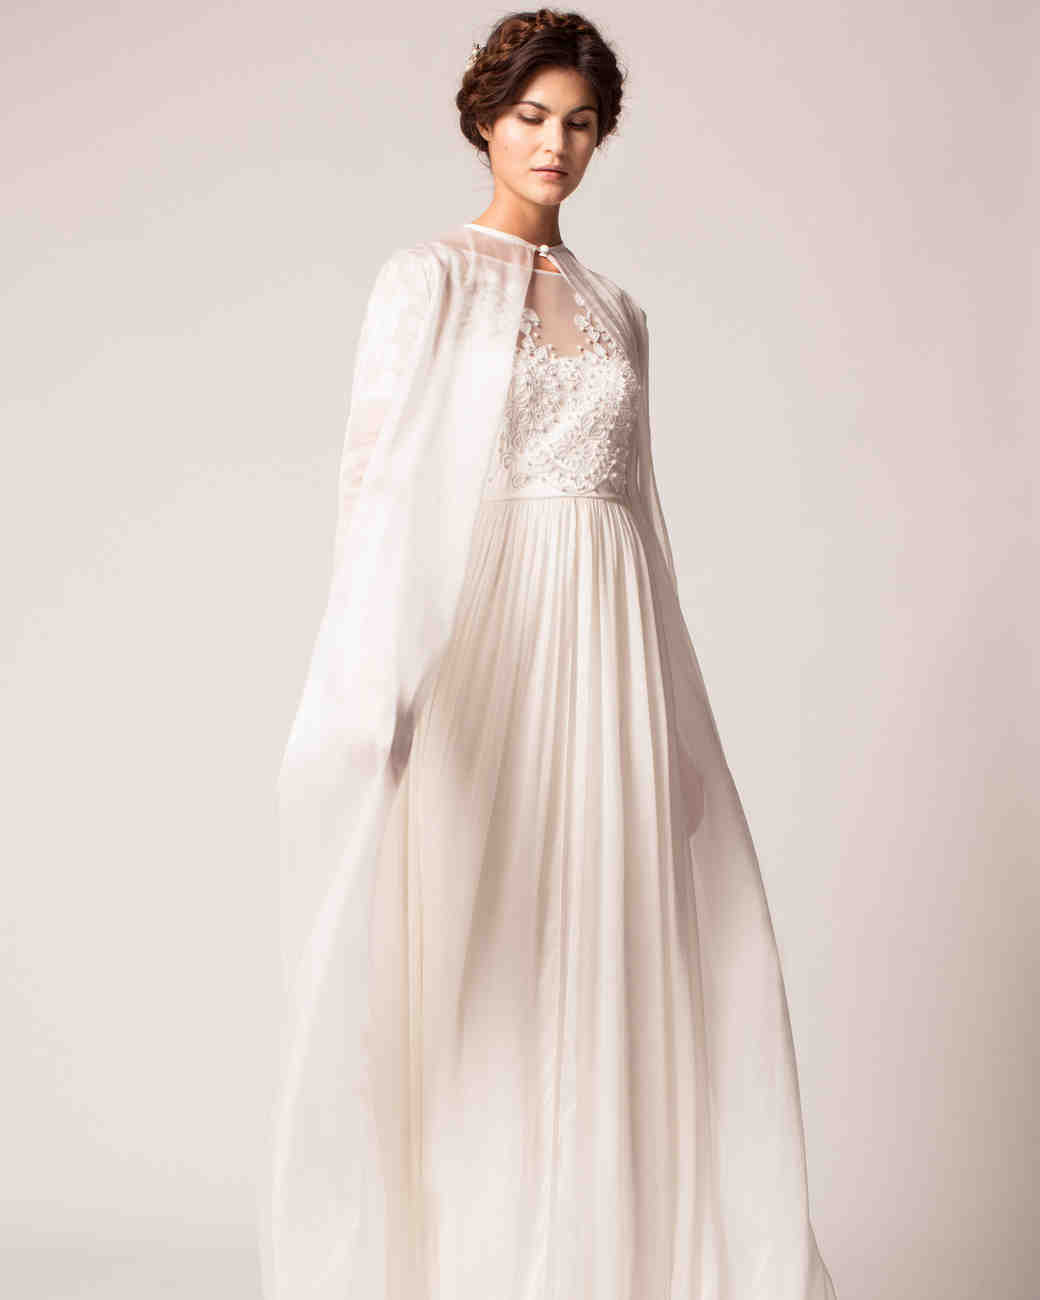 d44dc85c2 Temperley London Fall 2015 Bridal Collection